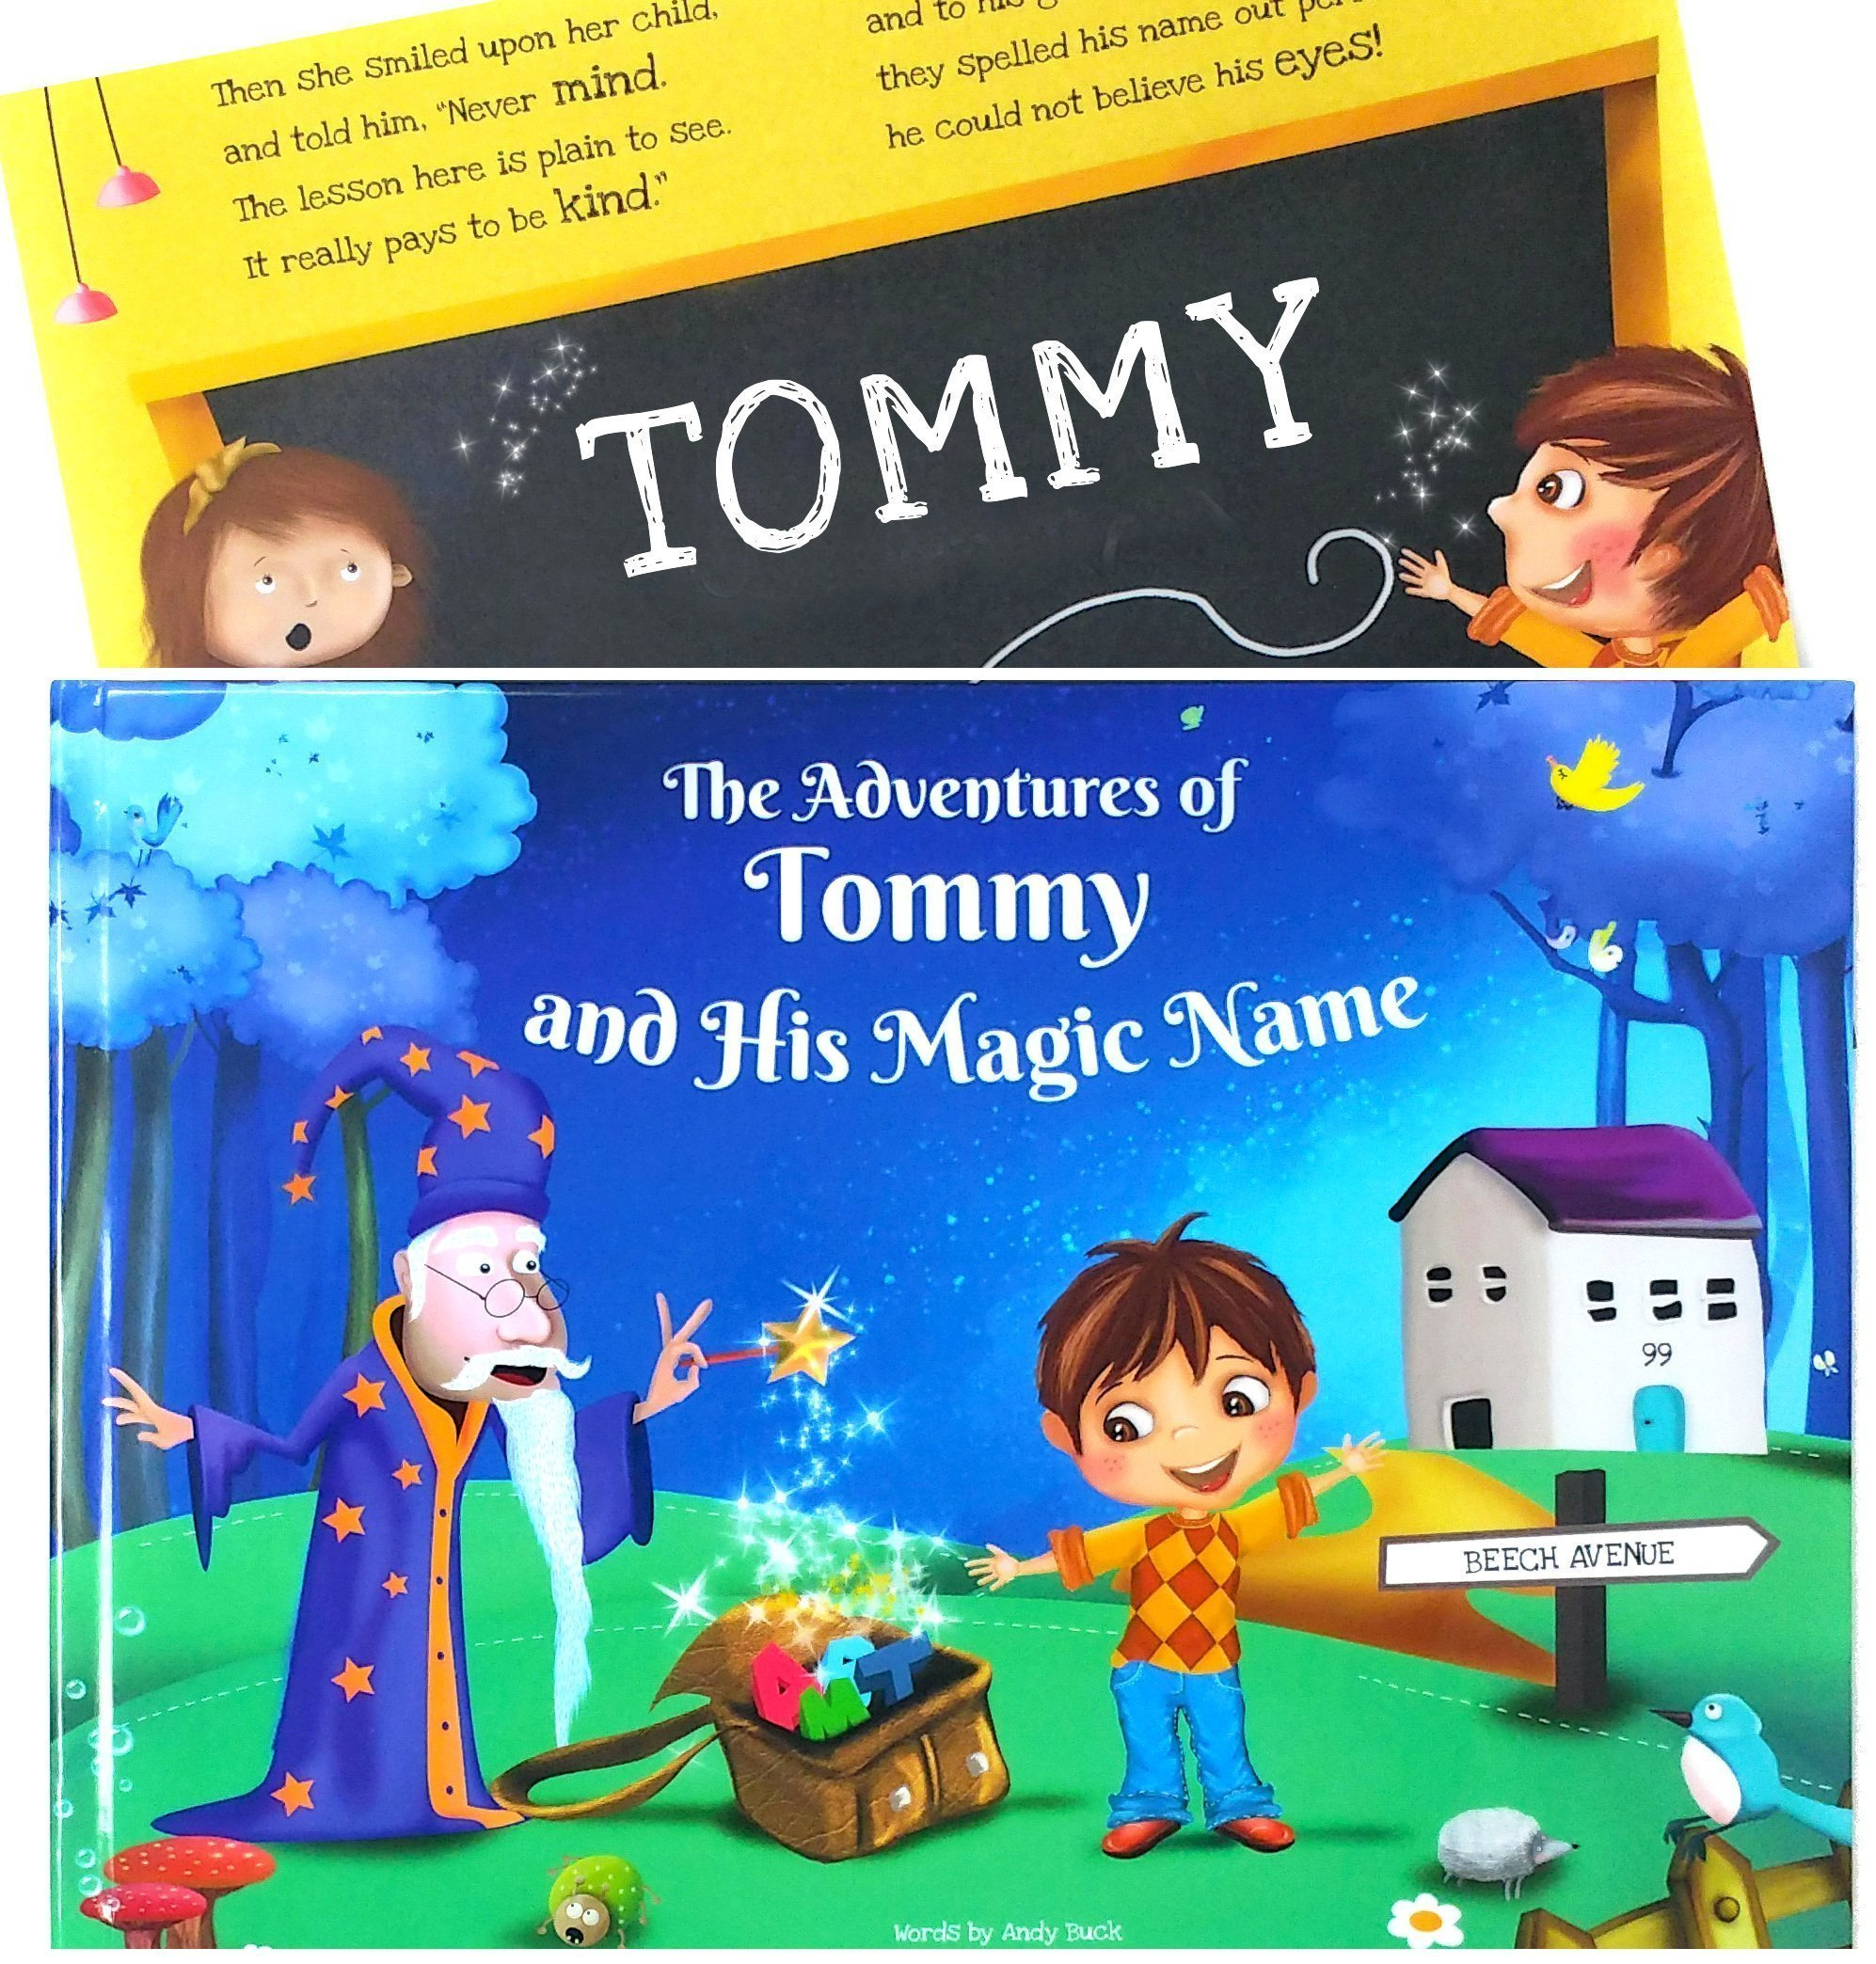 Personalized Children's Story Book - Totally Unique - Great Gift for Kids